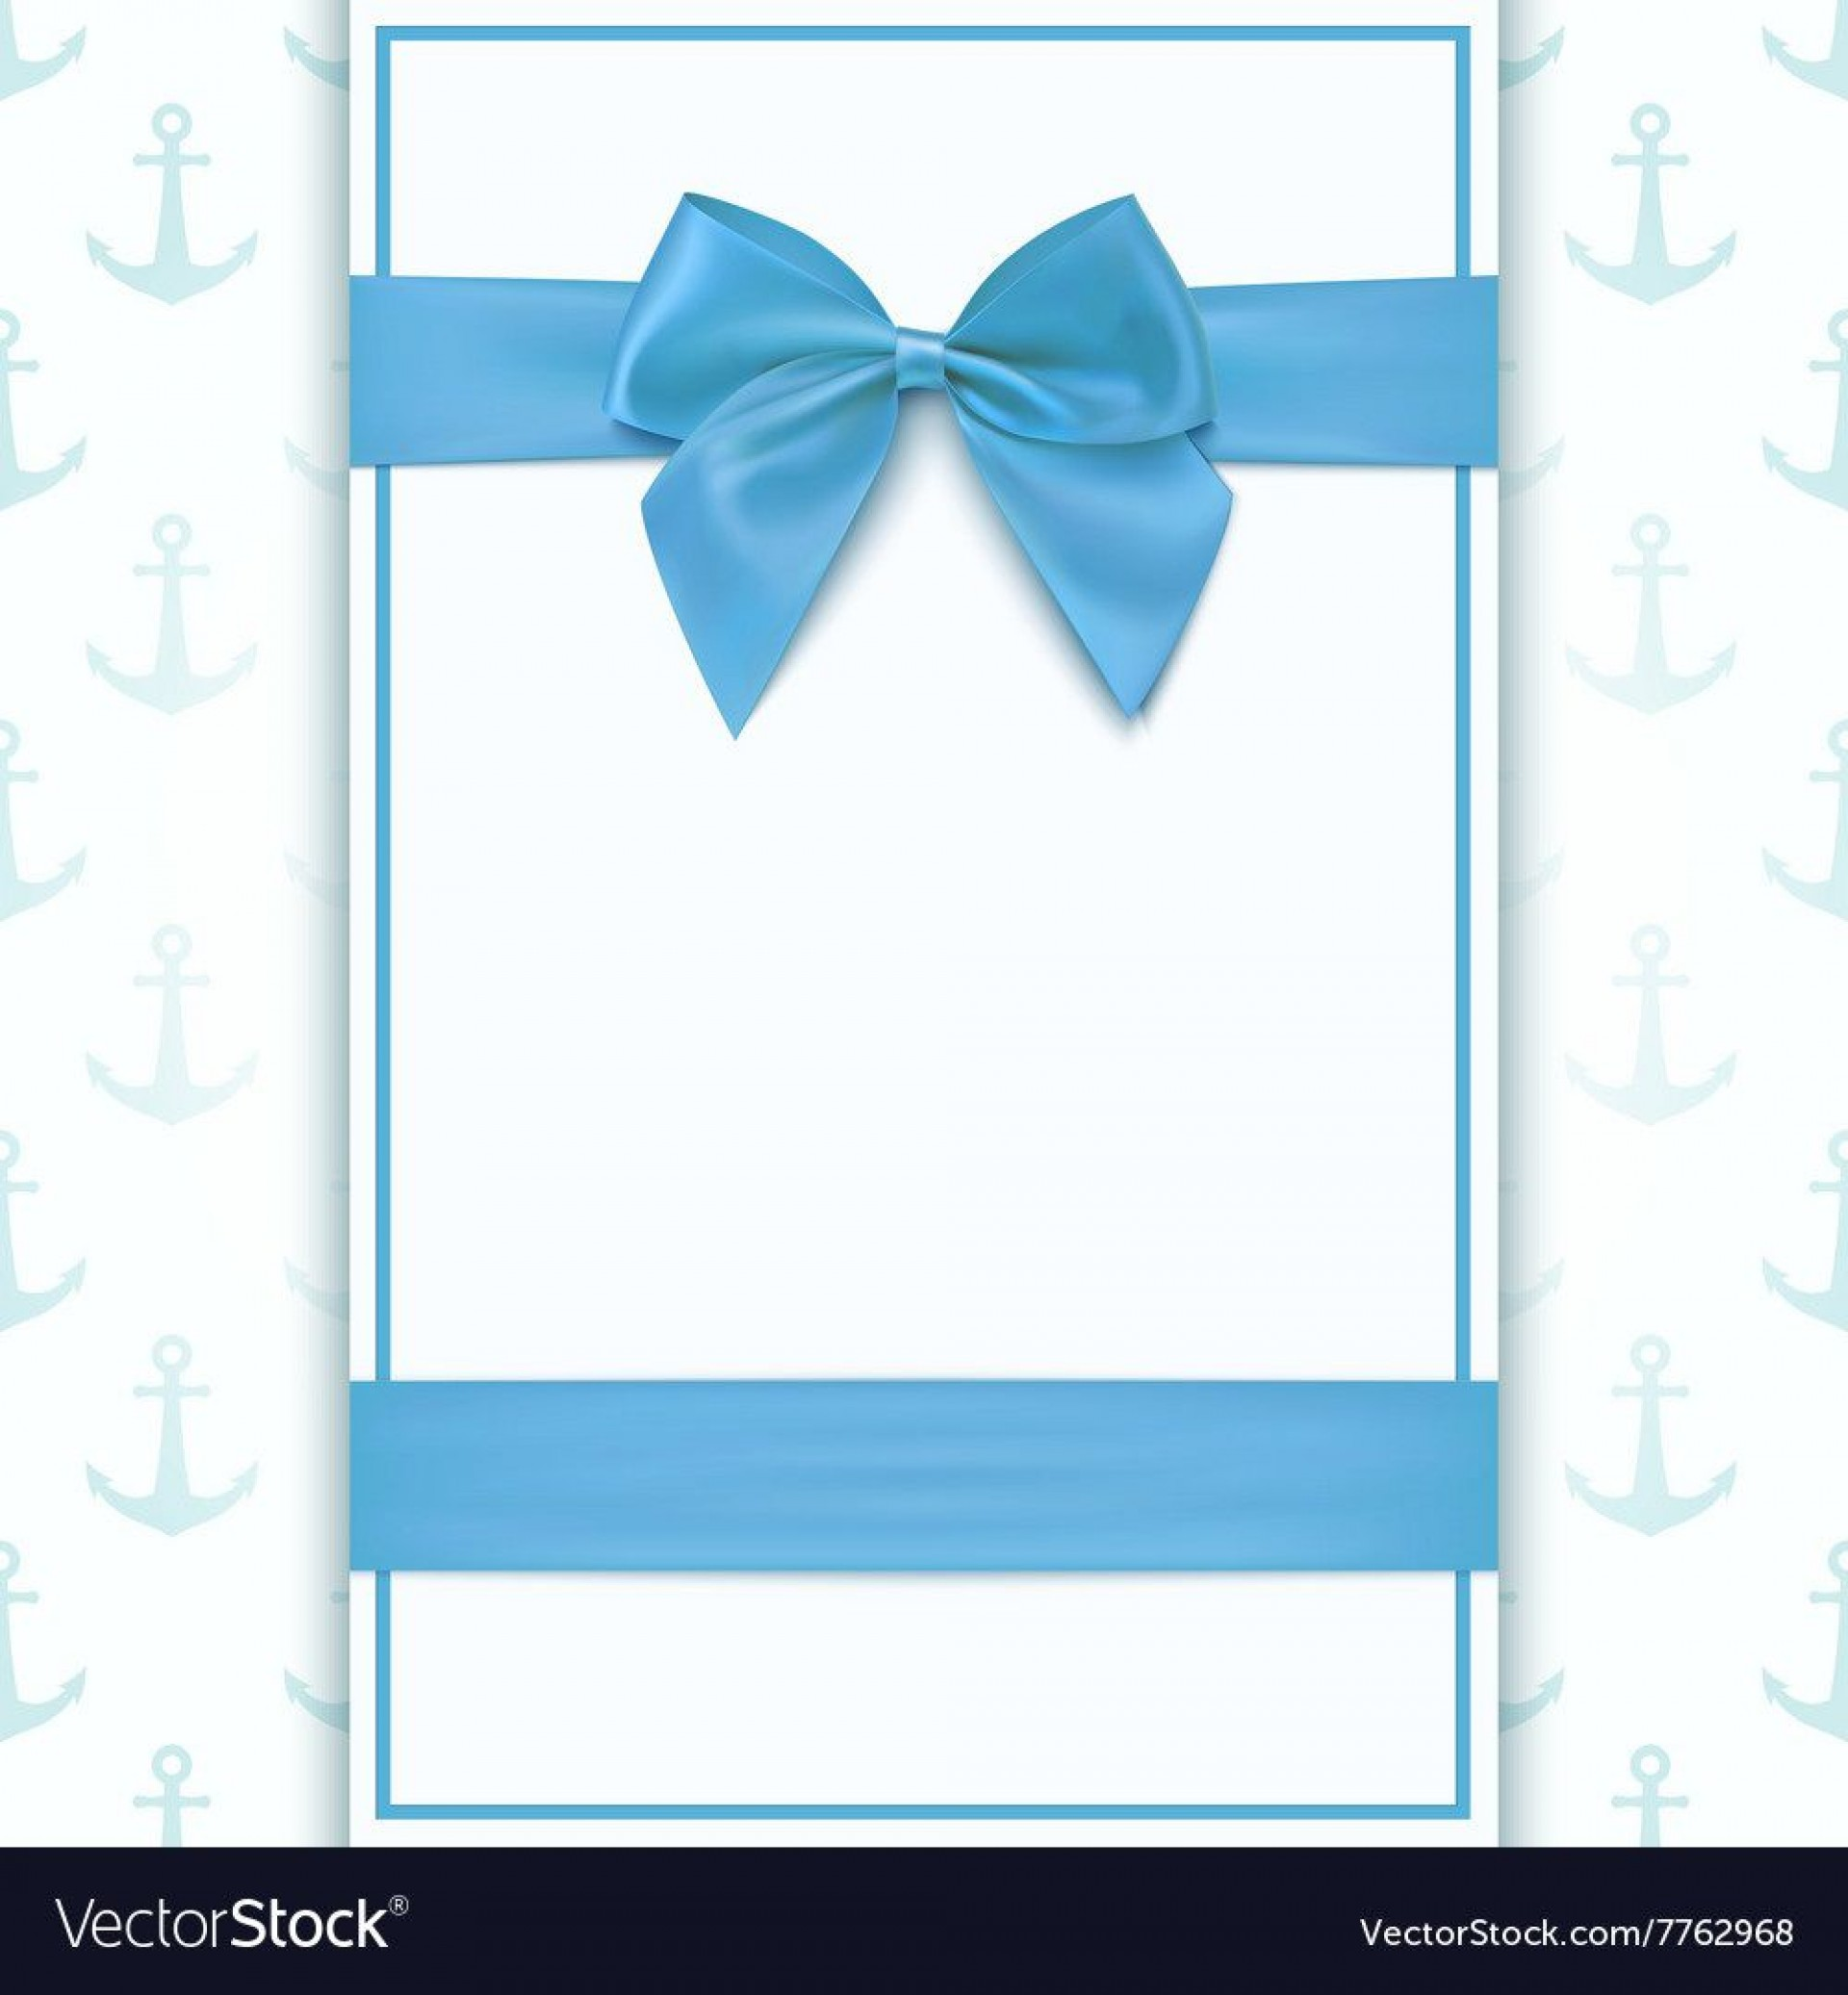 006 Awesome Blank Birthday Card Template Highest Quality  Word Free Printable Greeting Download1920